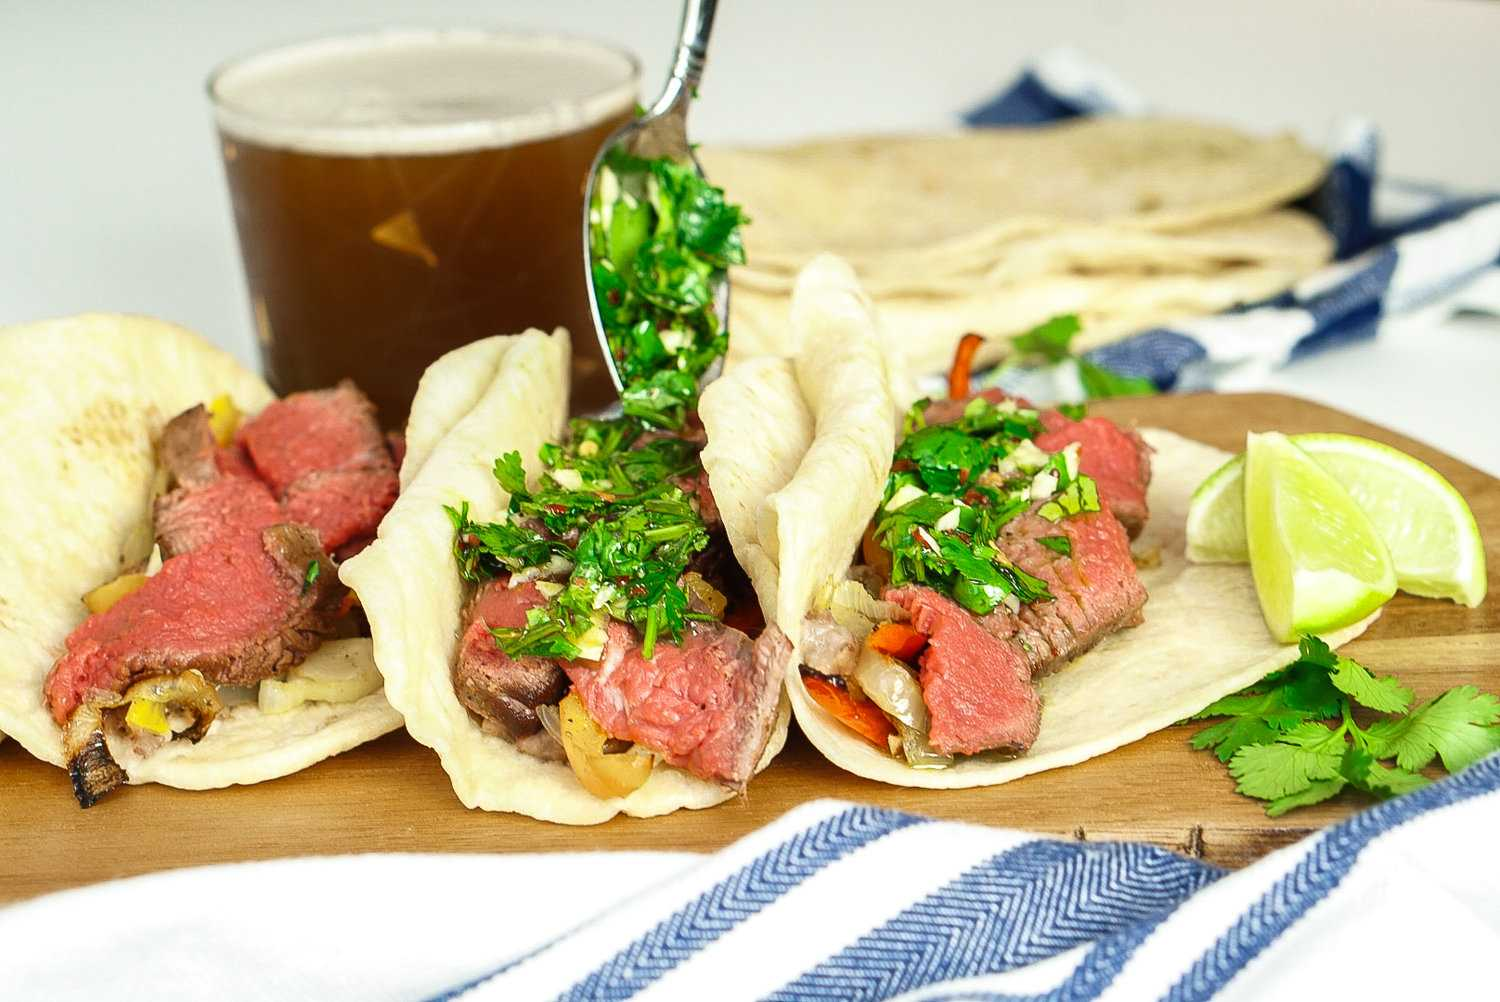 Cilantro Chimichurri Sauce Recipe — Couple in the Kitchen